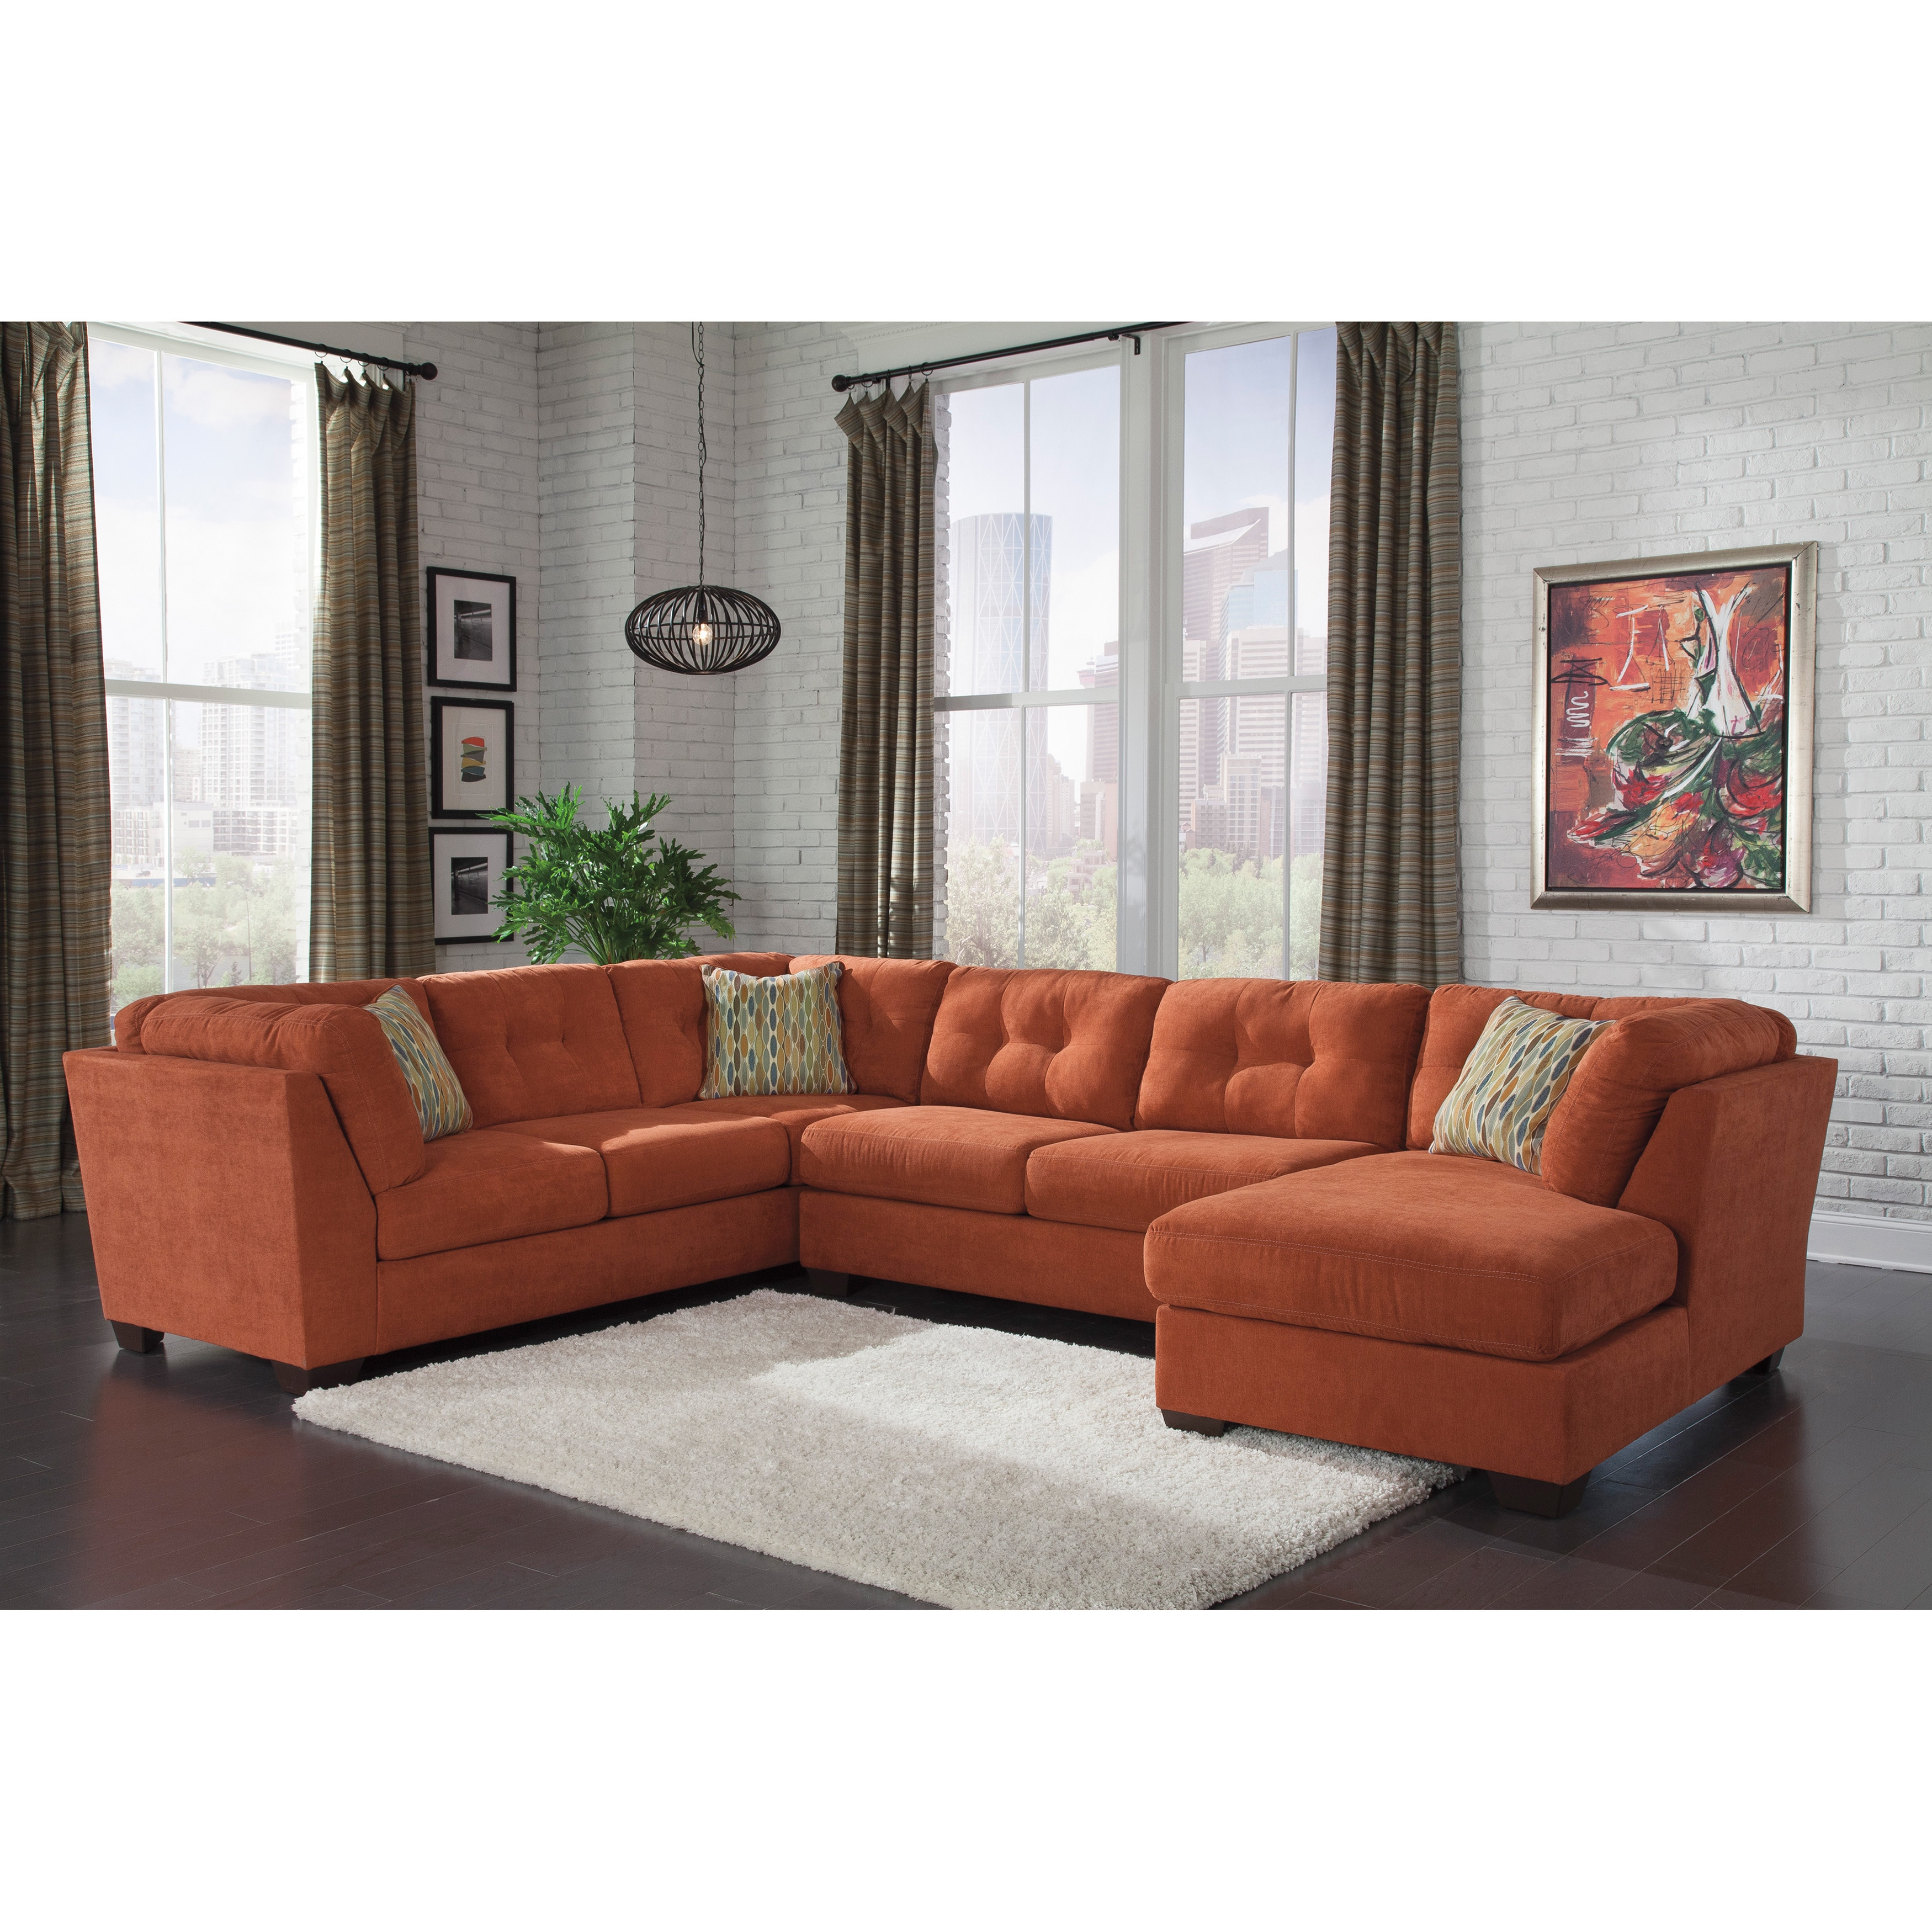 Brilliant Signature Design By Ashley Delta City 3 Piece Corner Chase Armless Loveseat And Sofa Sectional Beatyapartments Chair Design Images Beatyapartmentscom